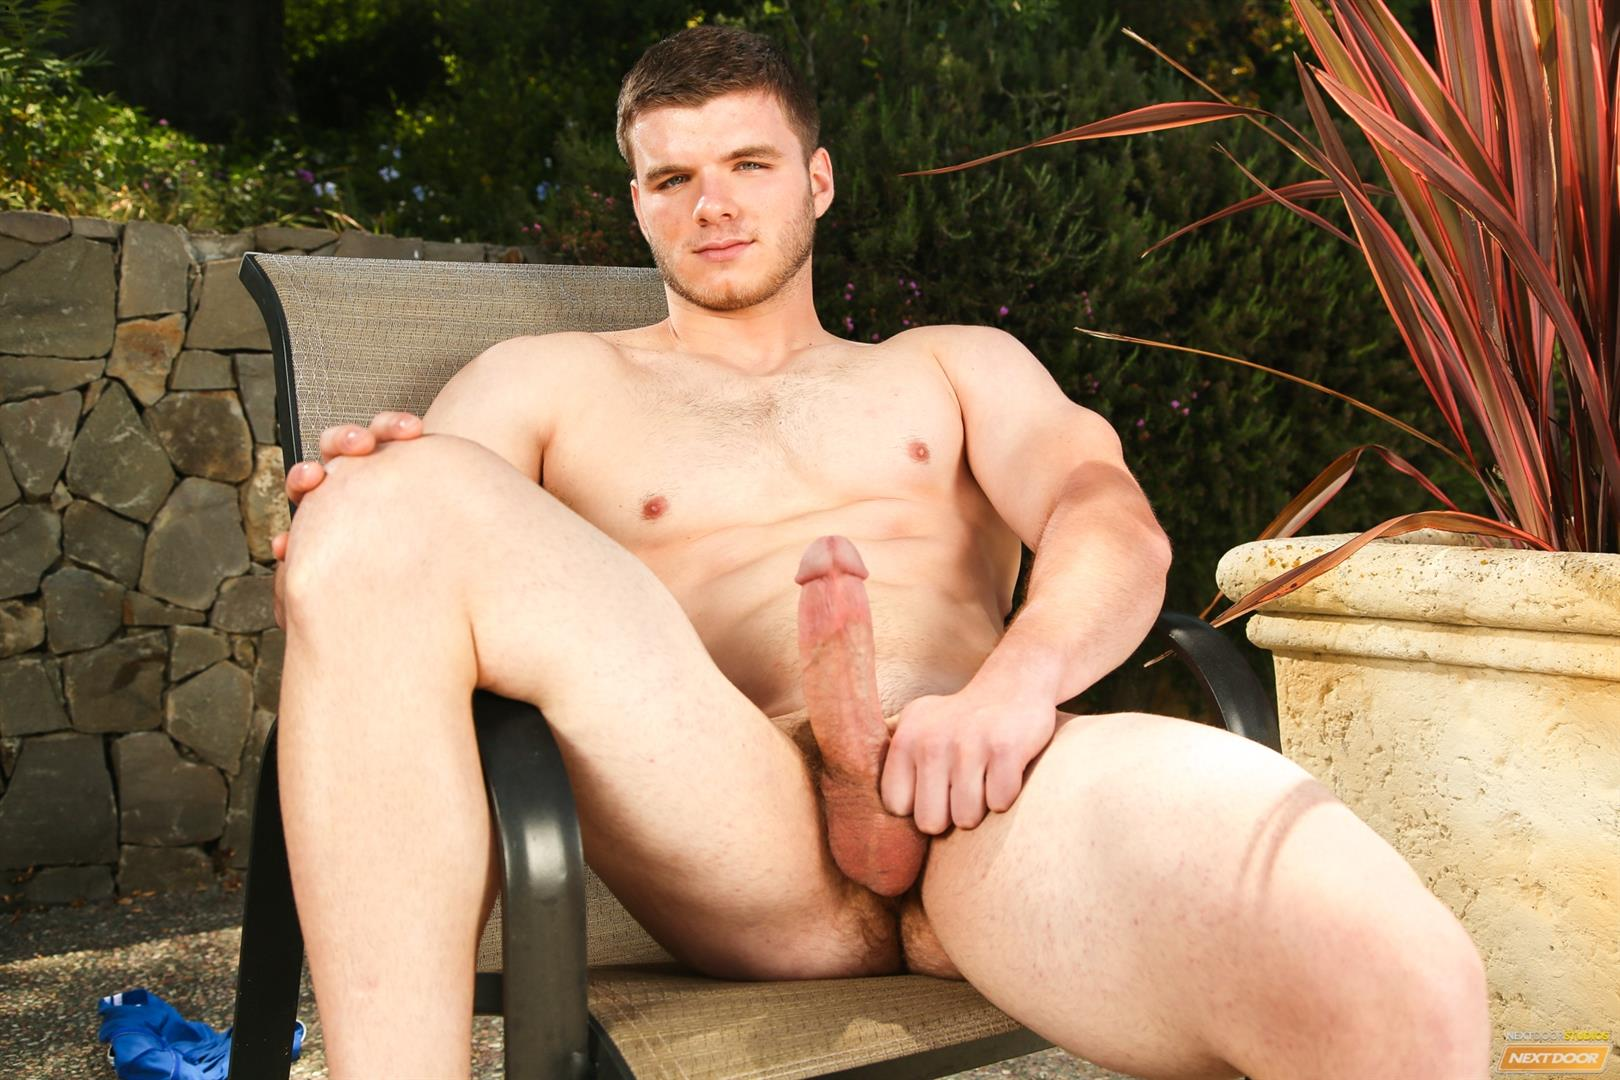 Next-Door-Male-Ivan-James-Muscular-Twink-Masturbation-Thick-Cock-Amateur-Gay-Porn-12 West Virginia Country Boy Strokes His Big Thick Cock